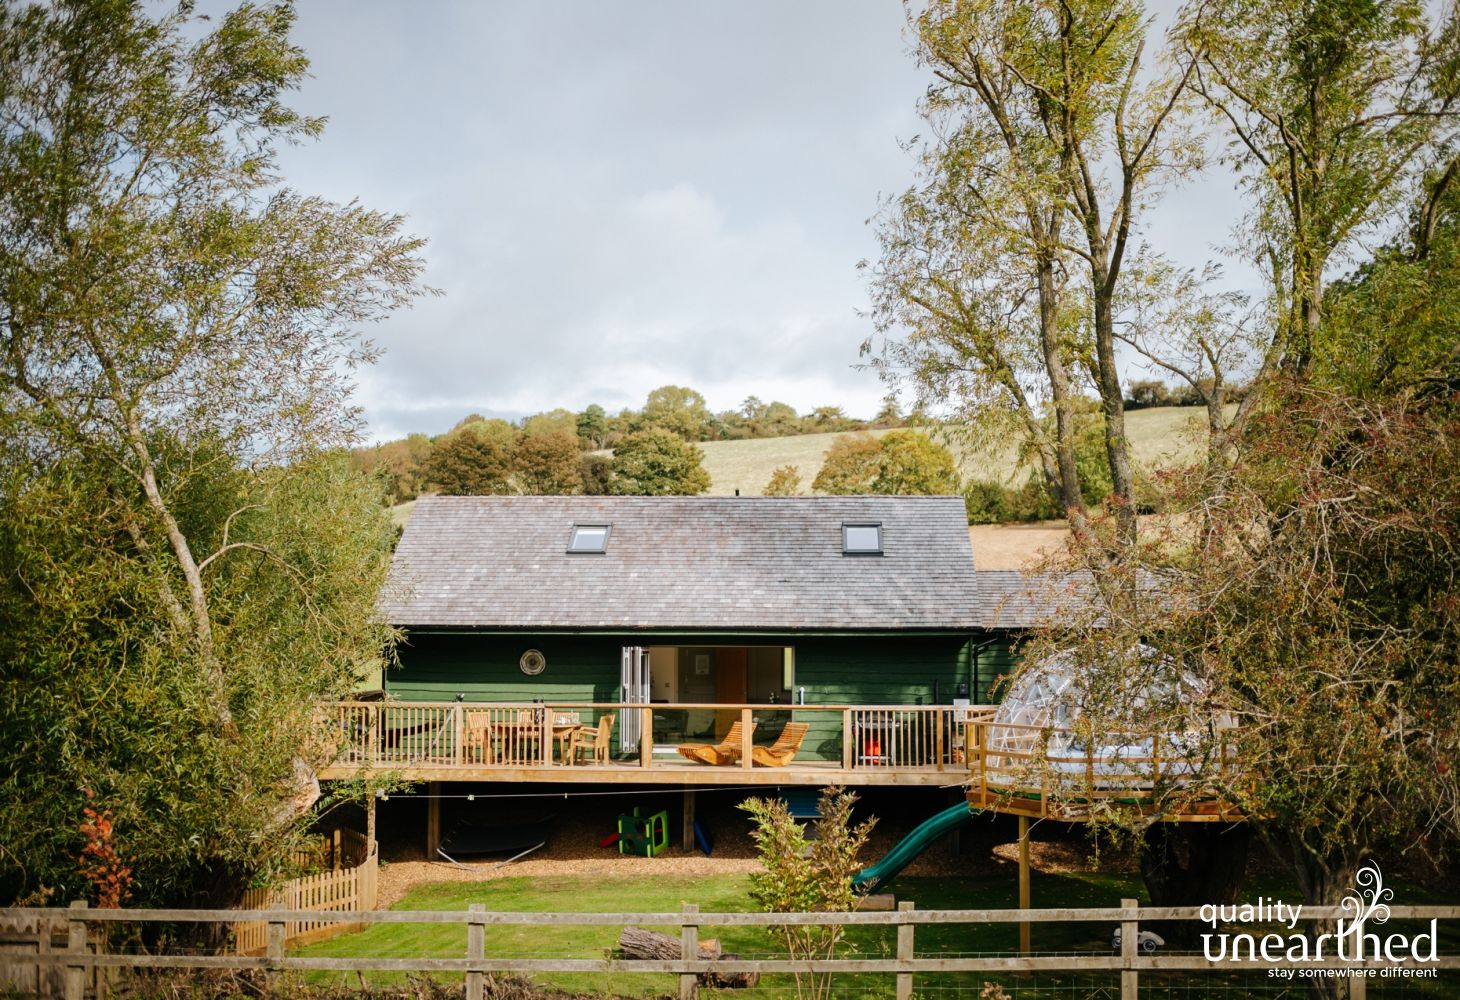 The wooden Cotswold treehouse has something for everyone, making it a perfect family holiday